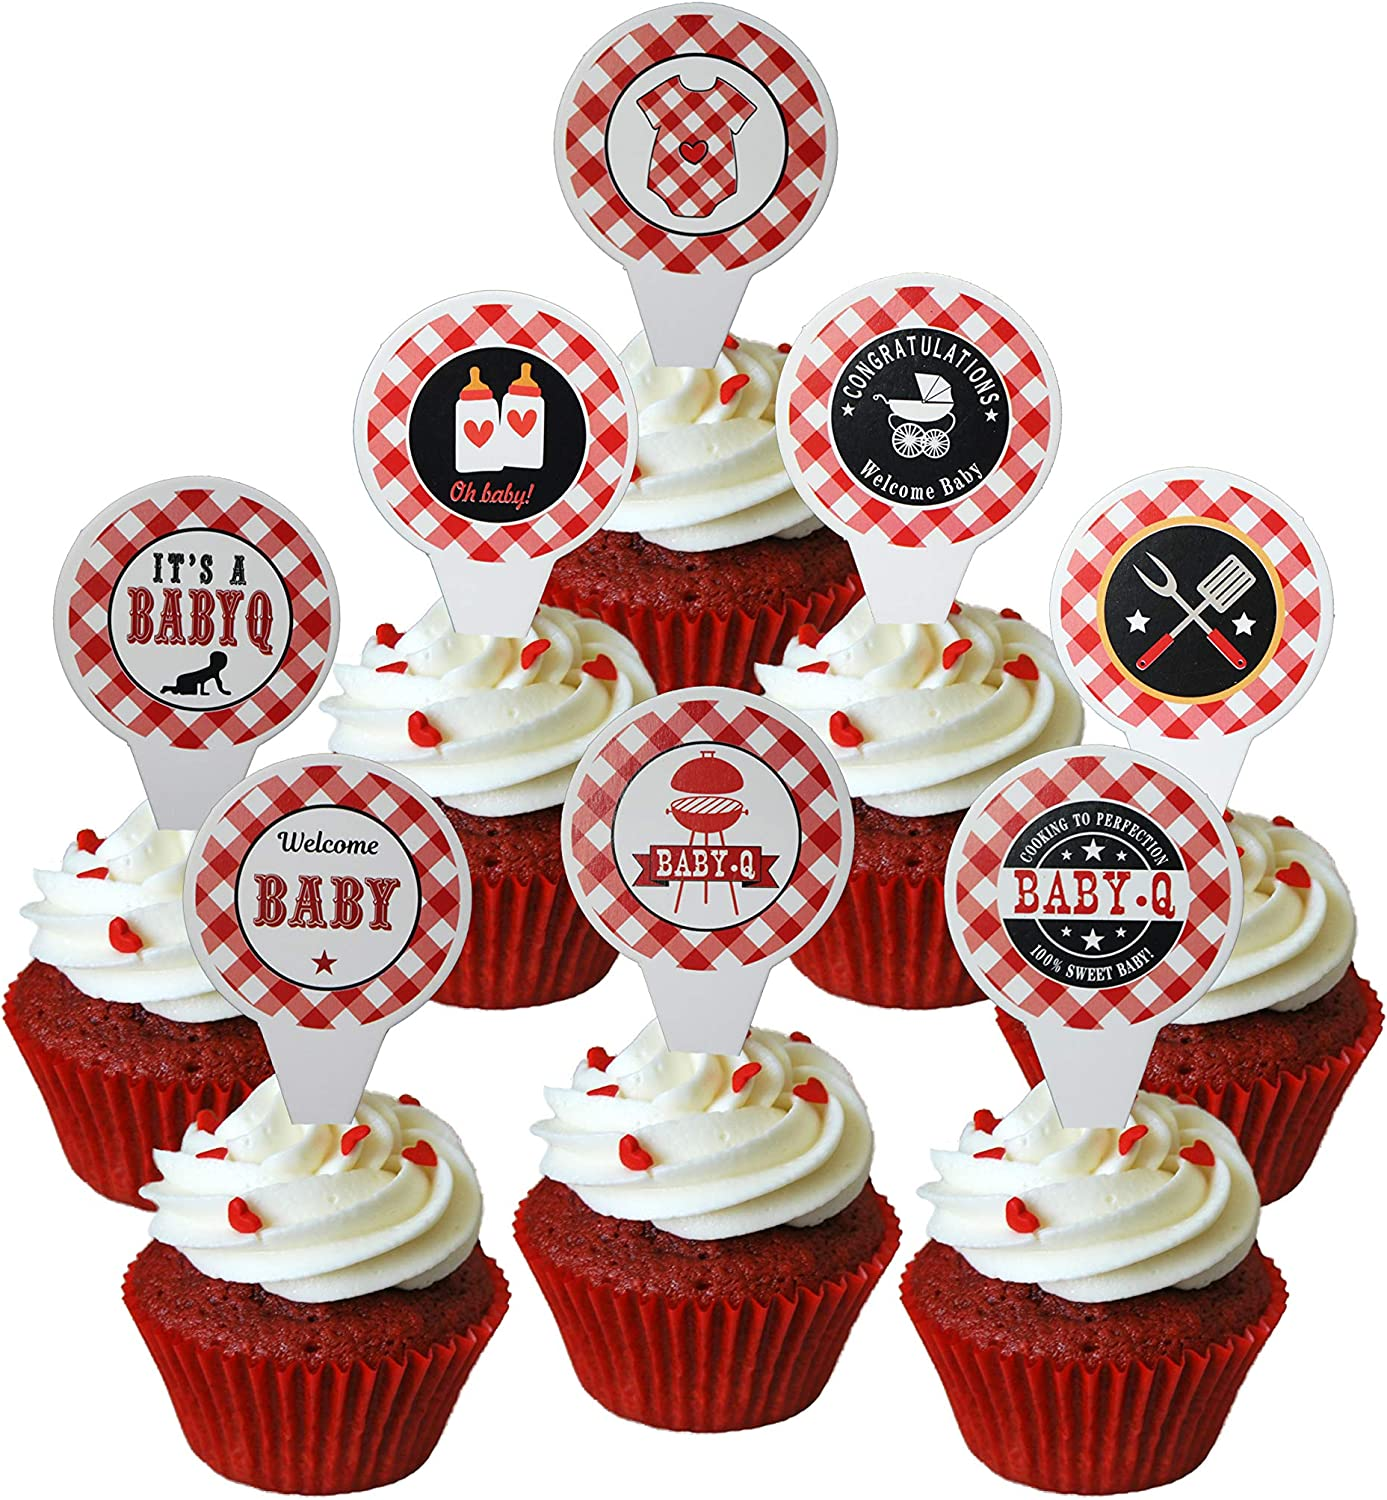 40 Pieces Baby Q Cupcake Topper BBQ Baby Shower Birthday Party Supplies Picnic Party Cake Topper for Summer Barbecue Picnic Baby Shower Birthday Party Decorations